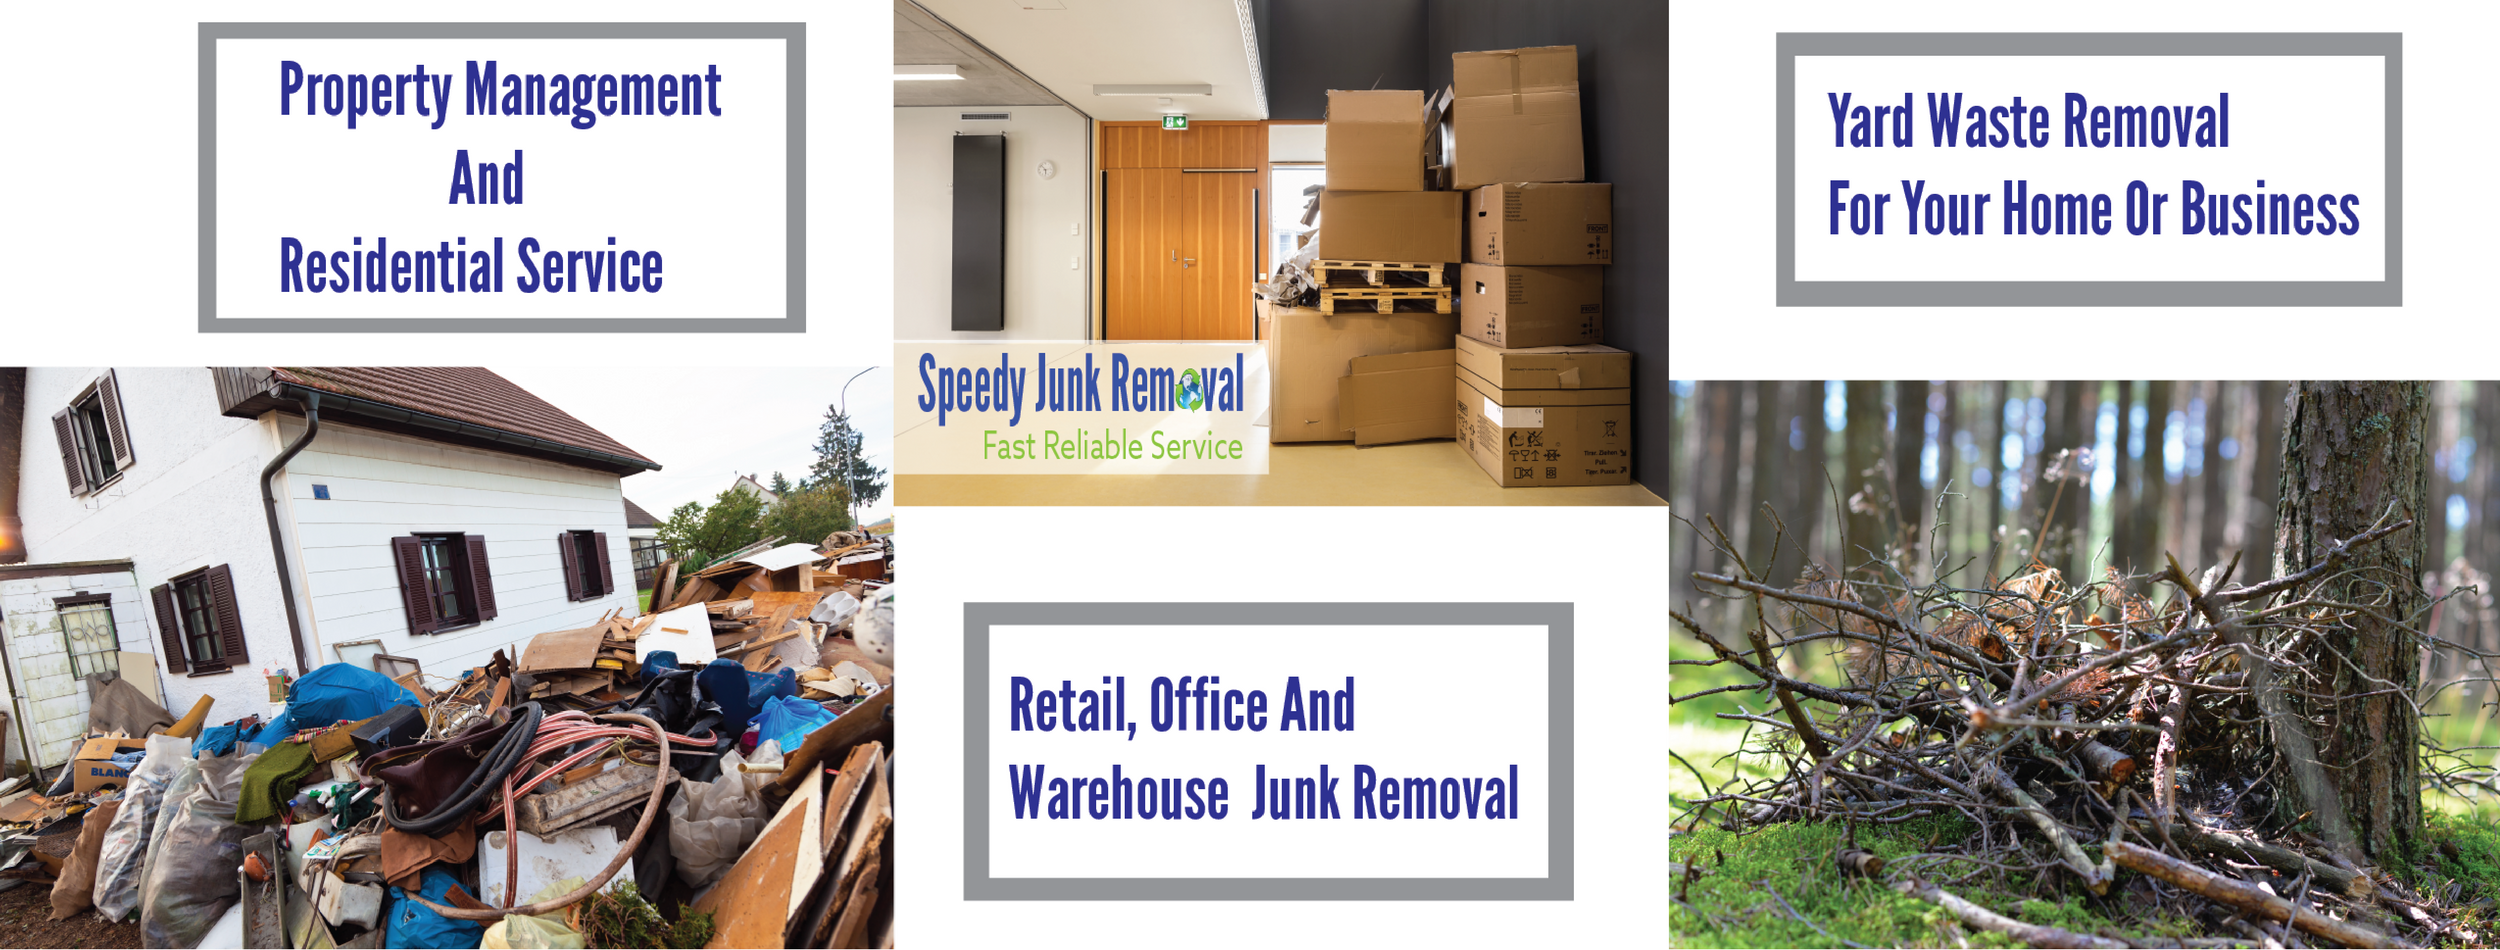 Services | Speedy Junk Removal | Fast Reliable Service | What We Take